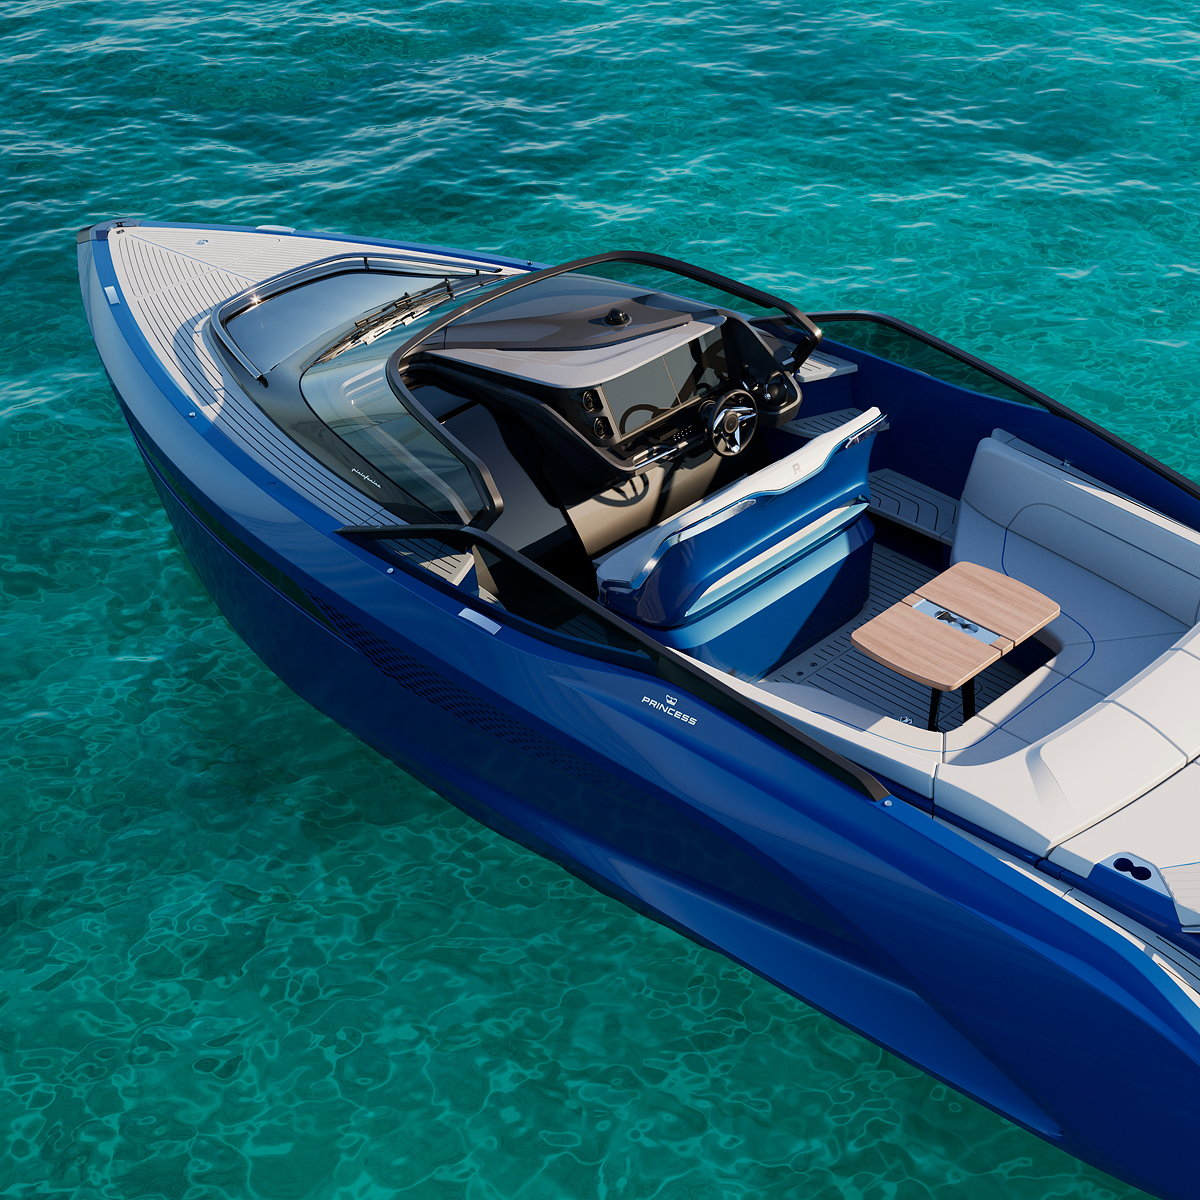 Princess R35 Performance Sports Yacht Designed by Pininfarina